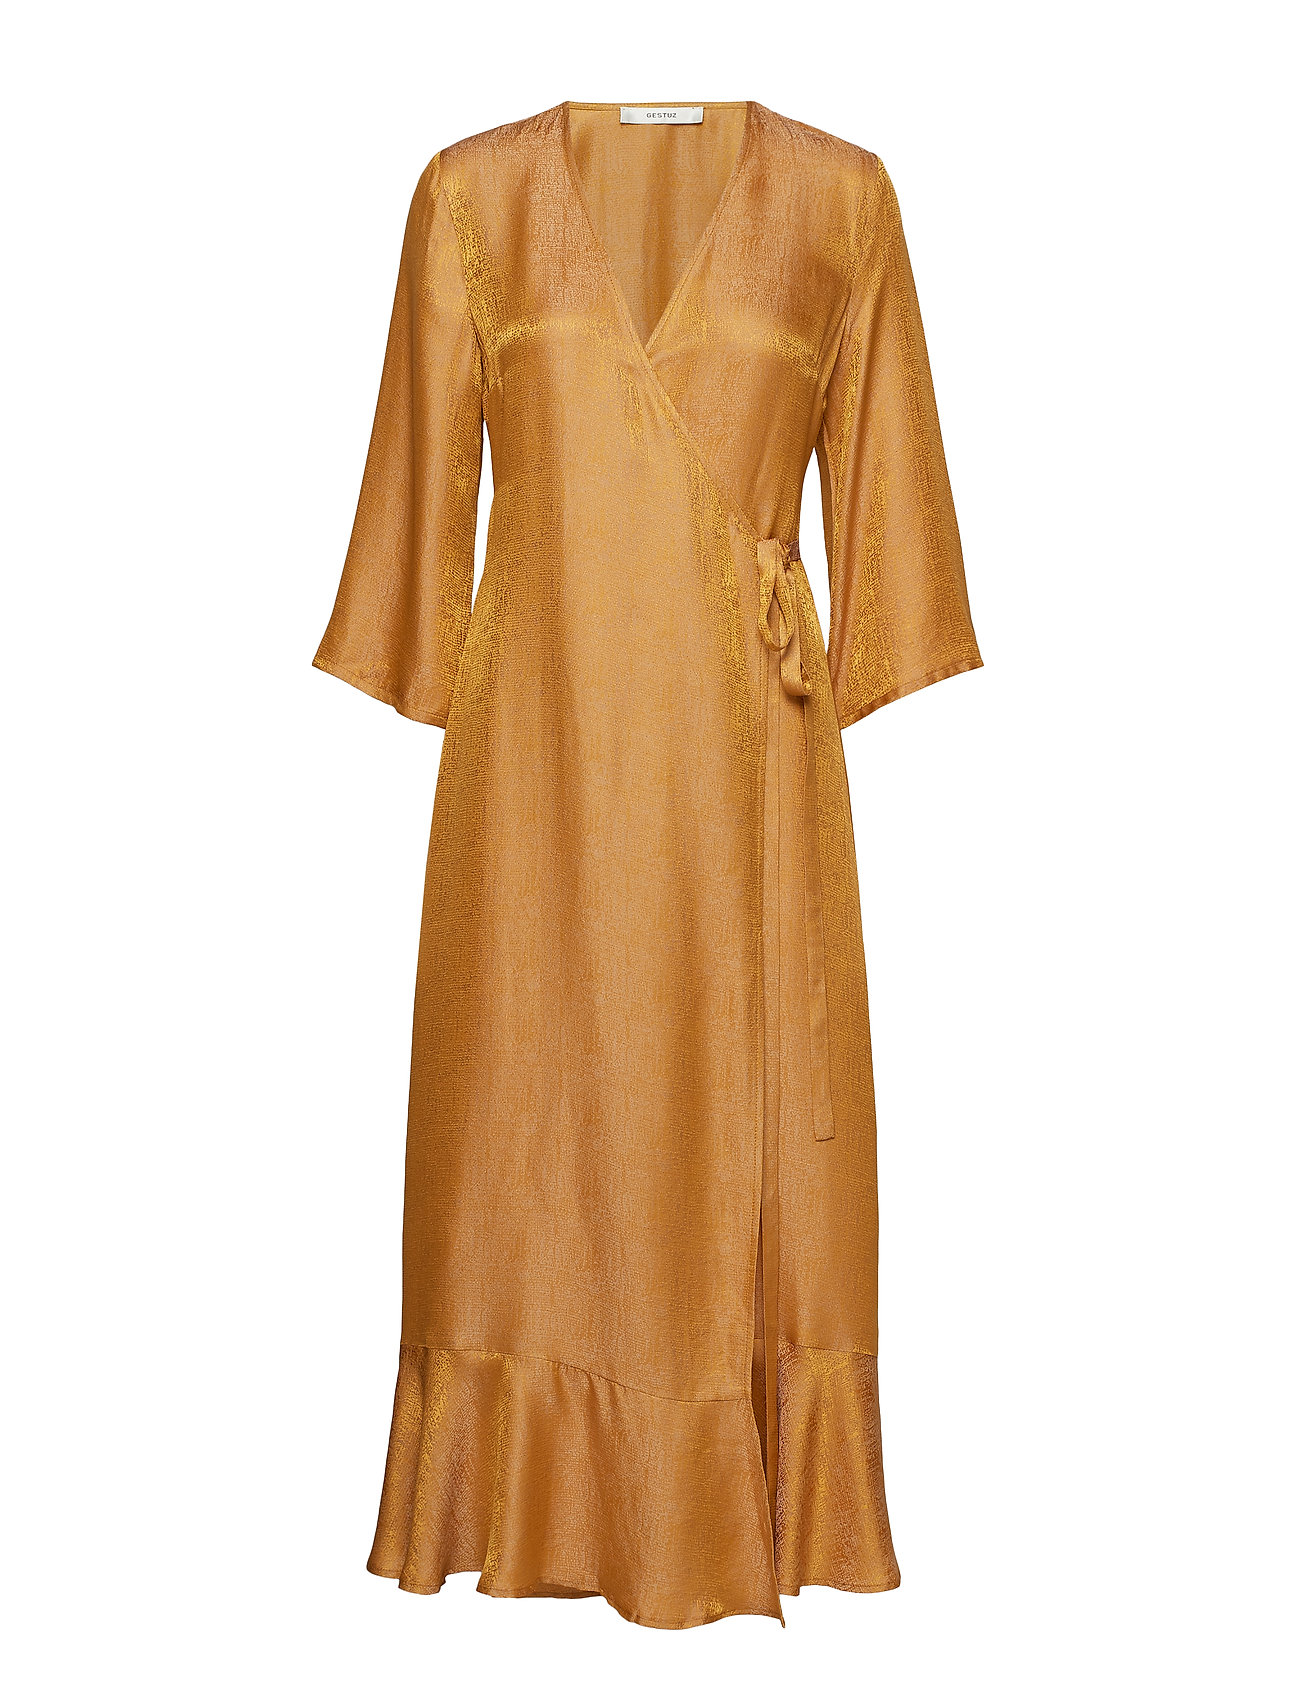 Gestuz CammaGZ wrap dress HS19 - NARCISSUS YELLOW